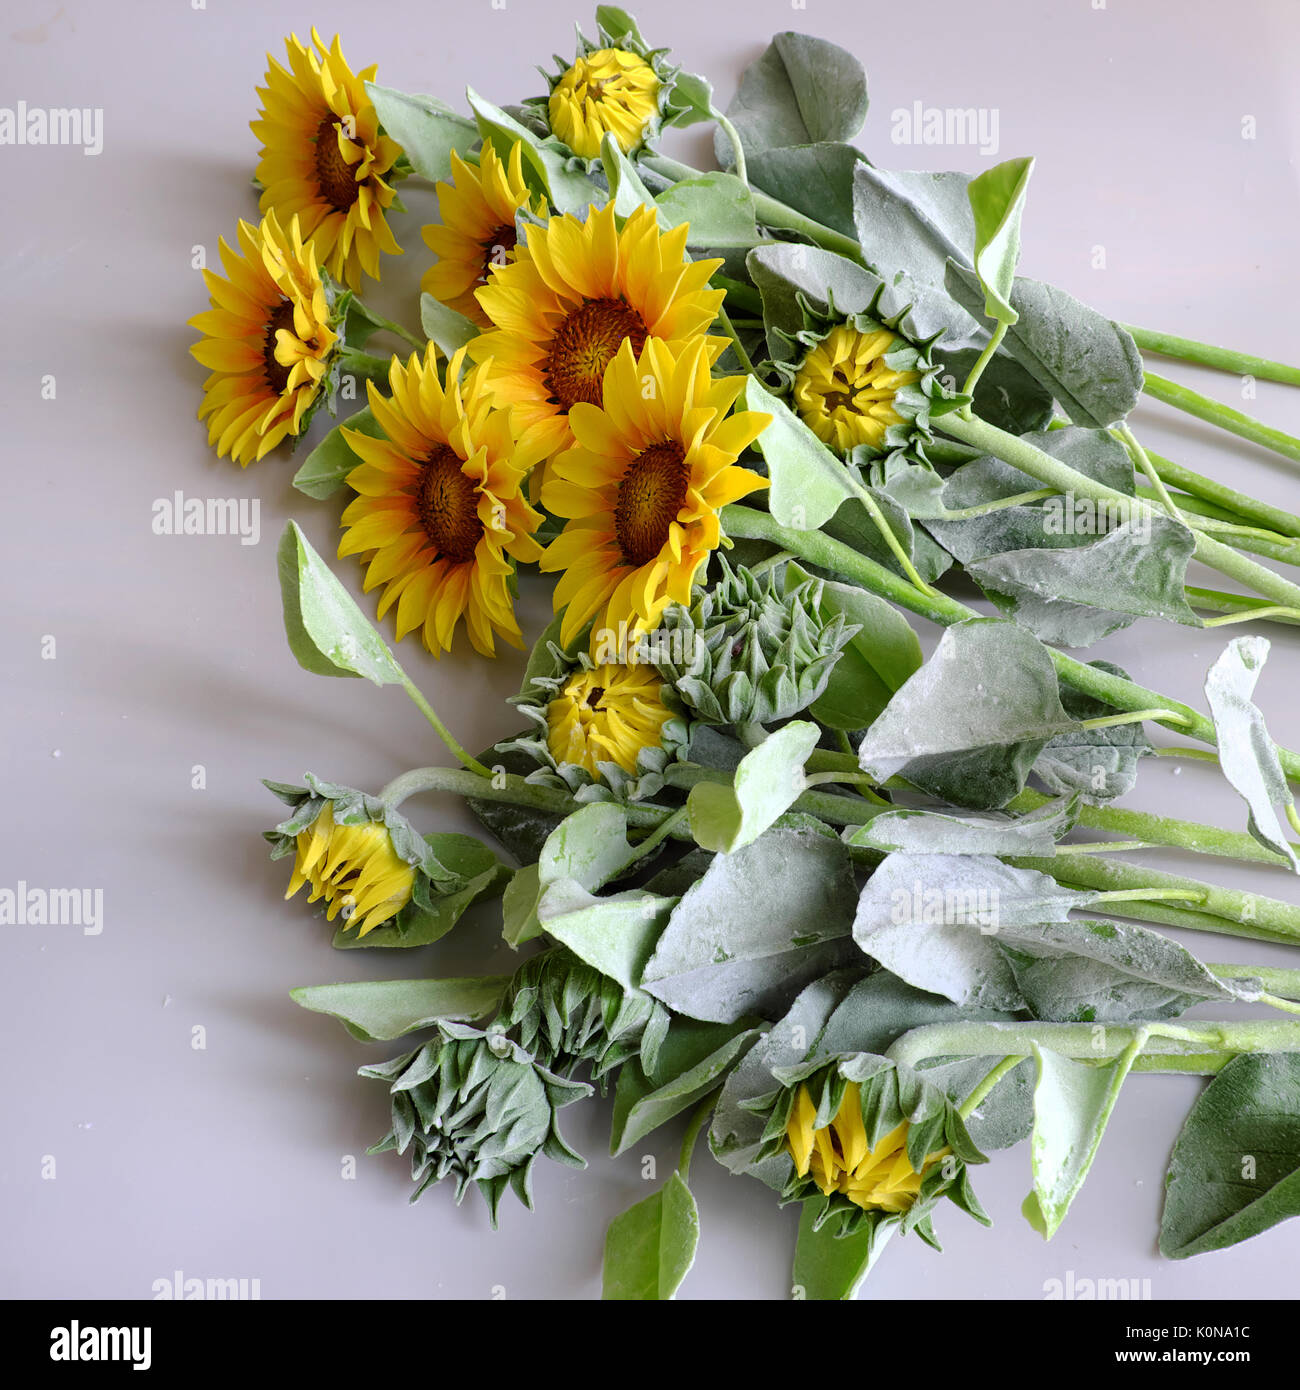 Amazing Clay Flower, Handmade Product For Home Decor, Sunflower Bouquet  Bloom In Yellow. Green Leaf On White Background, Beautiful Artificial Flower